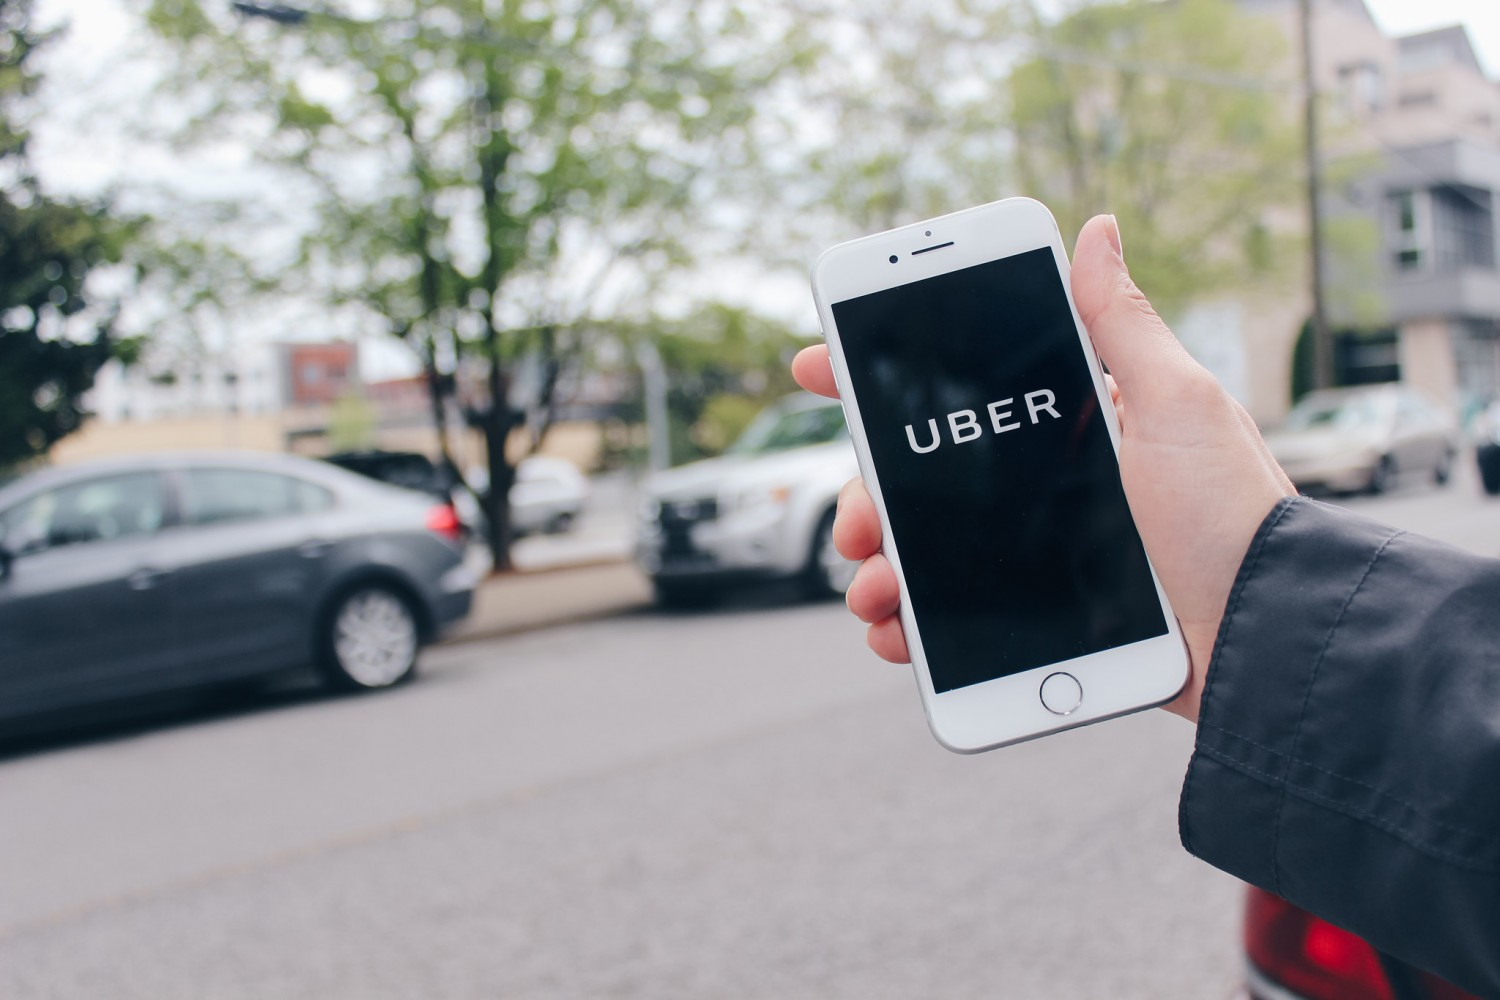 Mississauga failing to keep up with regulations to control Uber, Airbnb and other disruptors